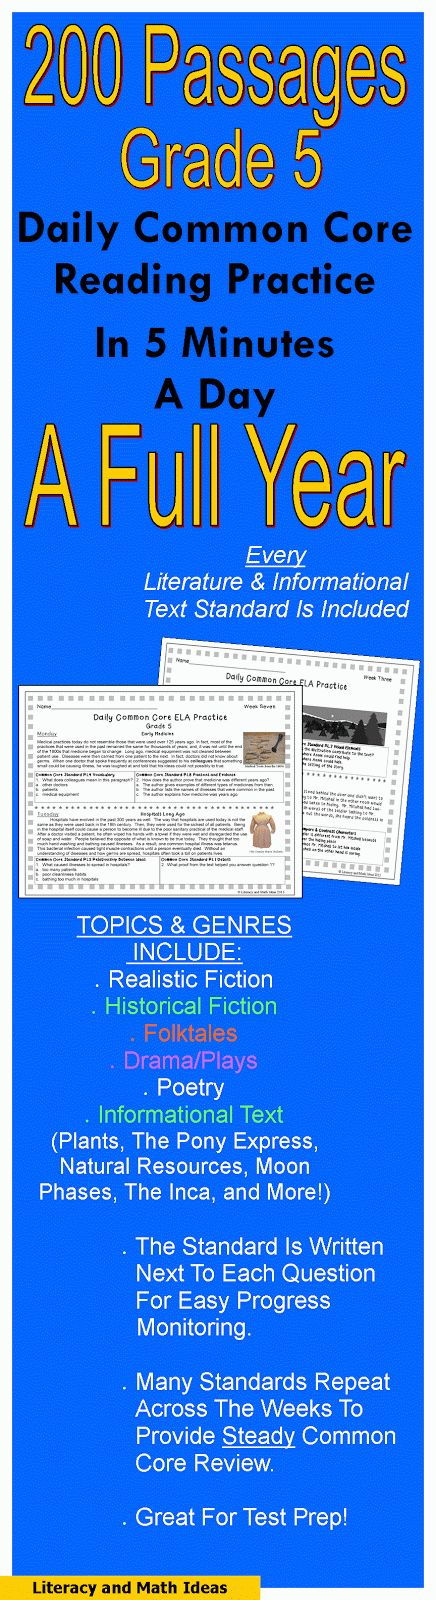 literary passages close reading grade 5 pdf